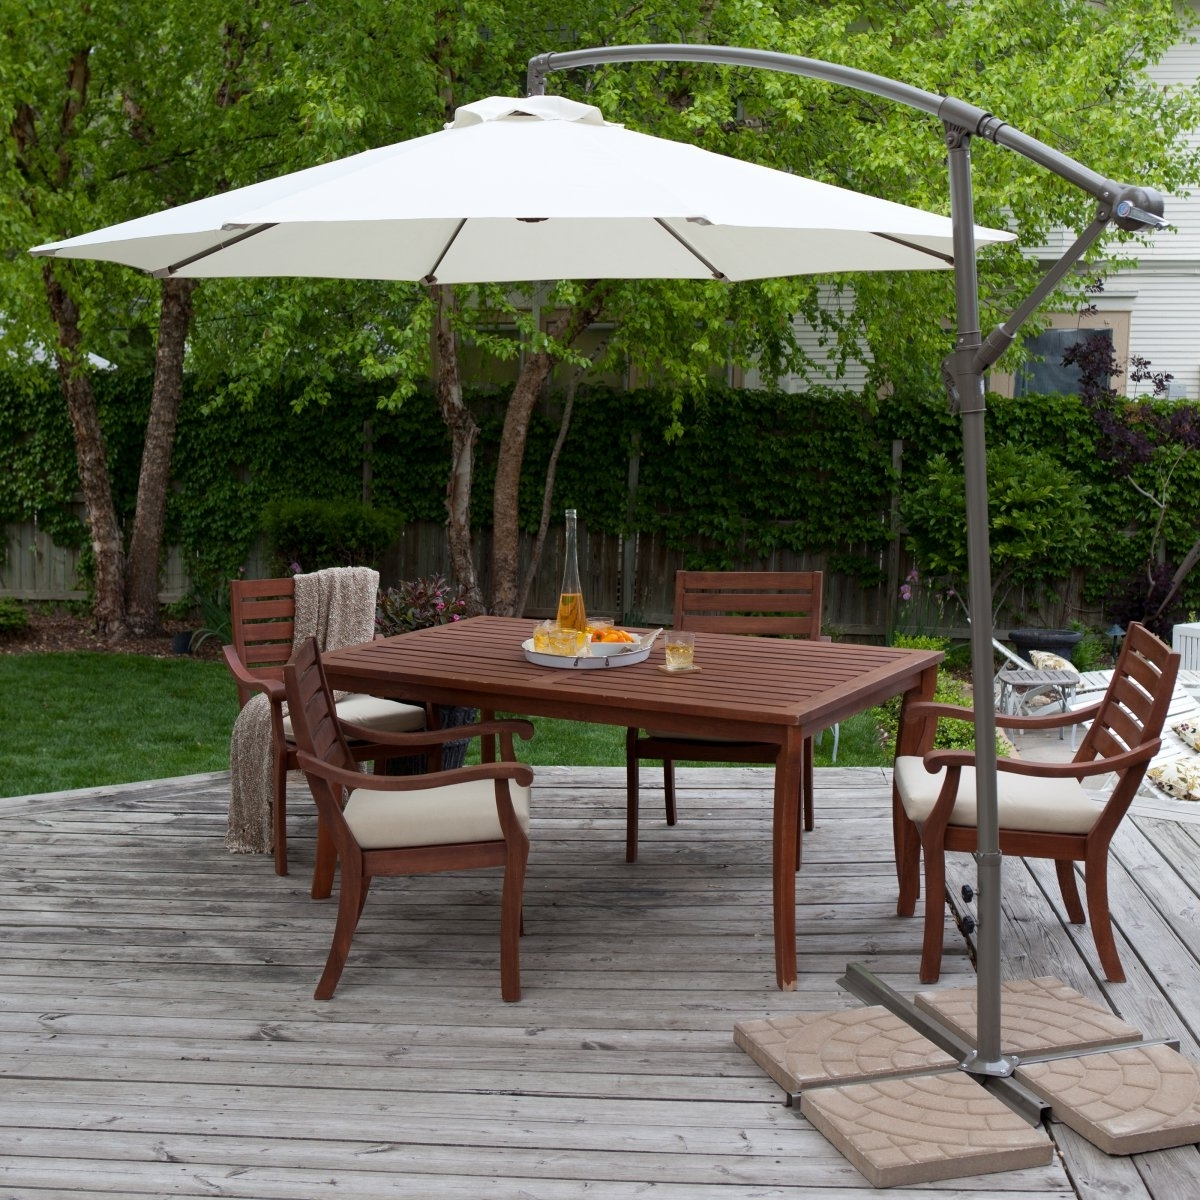 2018 Patio Tables With Umbrellas Intended For The Patio Table Umbrella For Comfort Gathering — Mistikcamping Home (View 2 of 20)